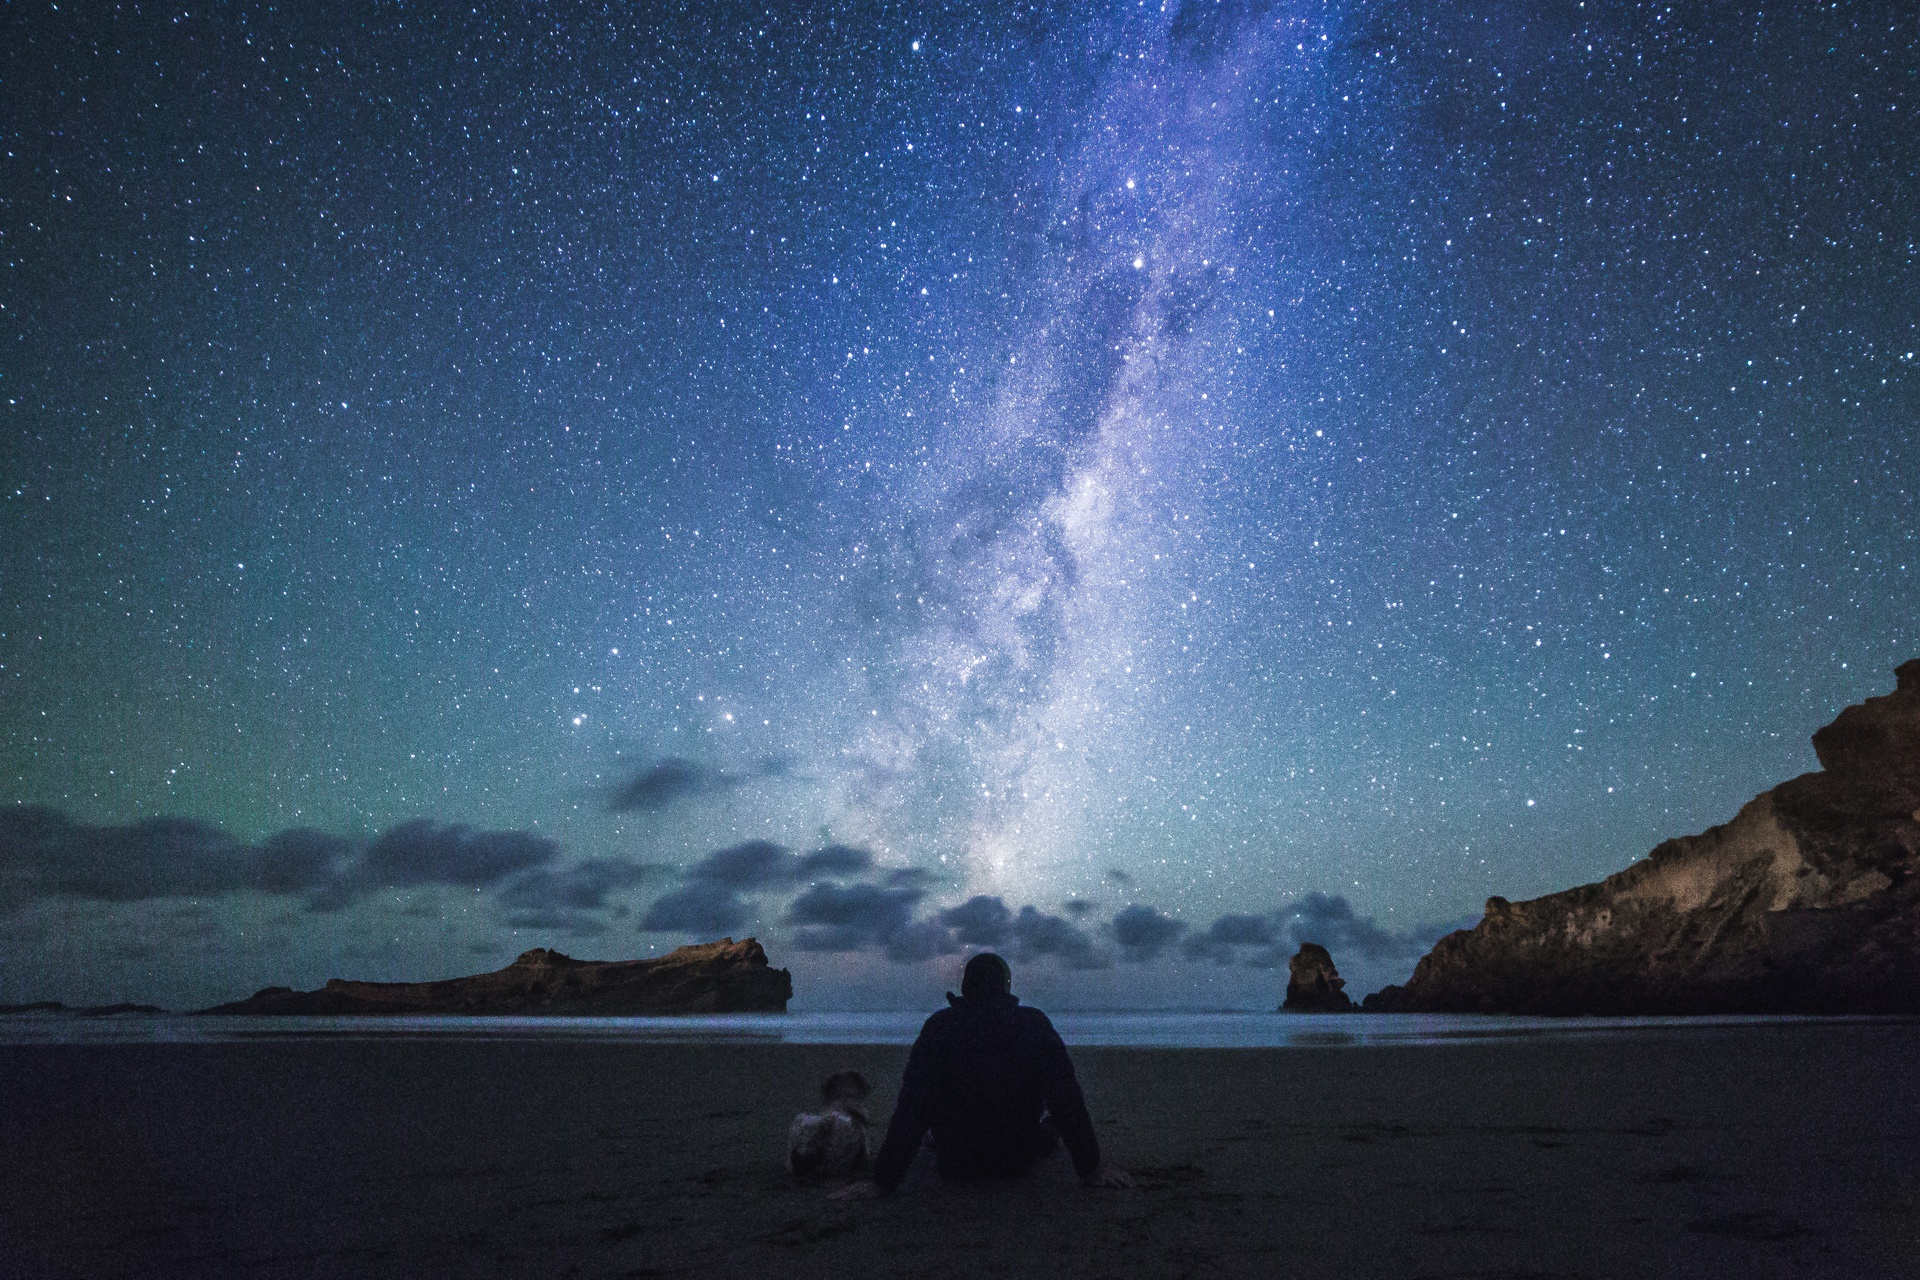 Night sky at Castlepoint in the Wairarapa. Image courtesy Daniel Rood and TNZ